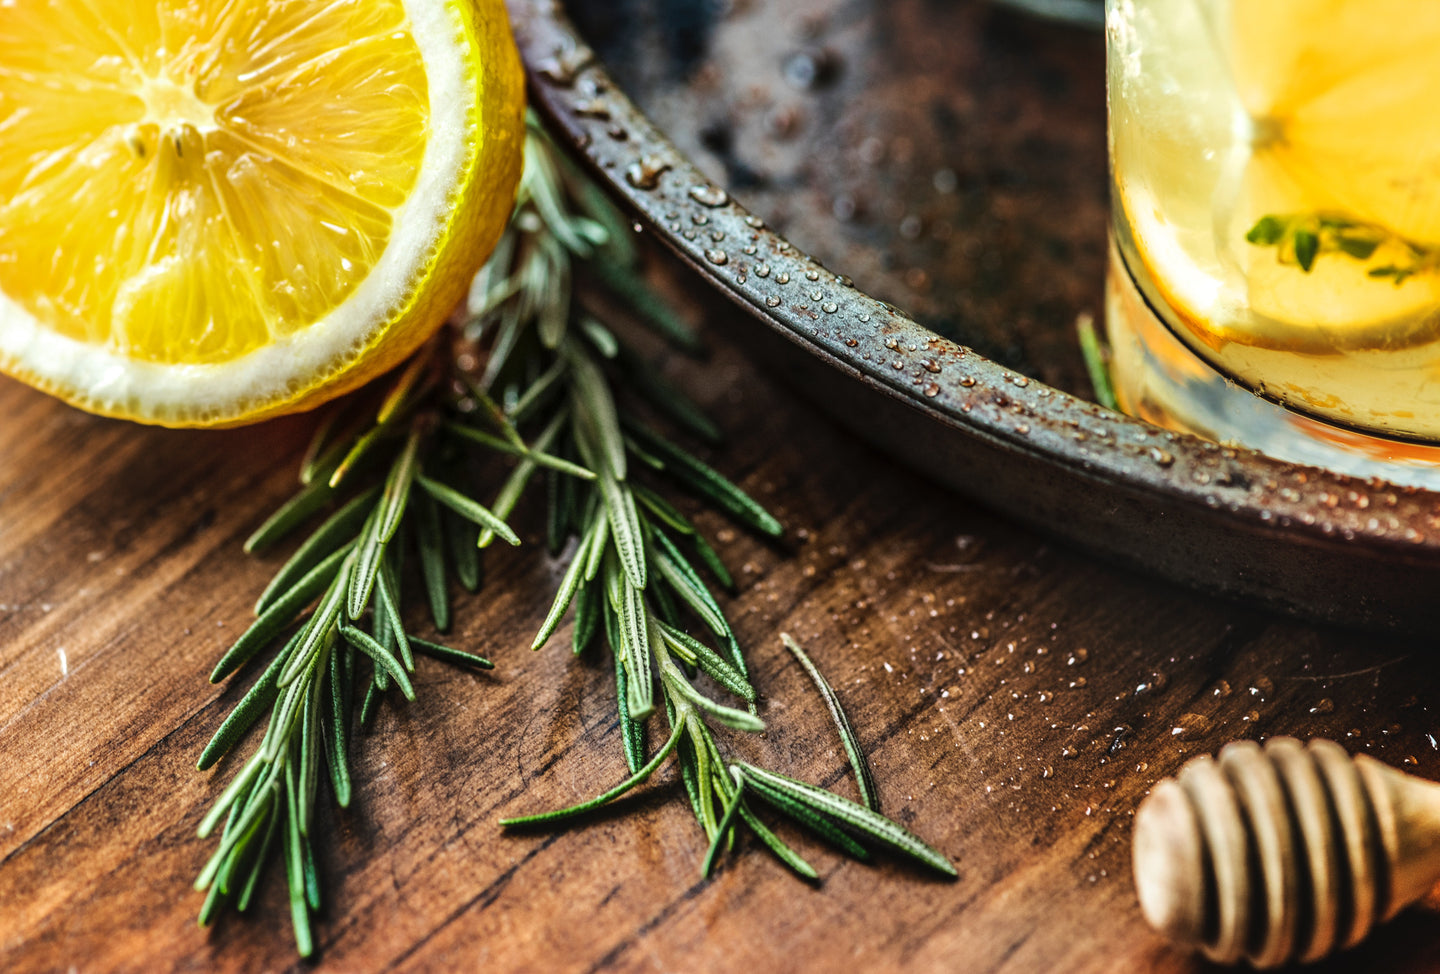 Focus photo of rosemary and lemon - W-Photographie